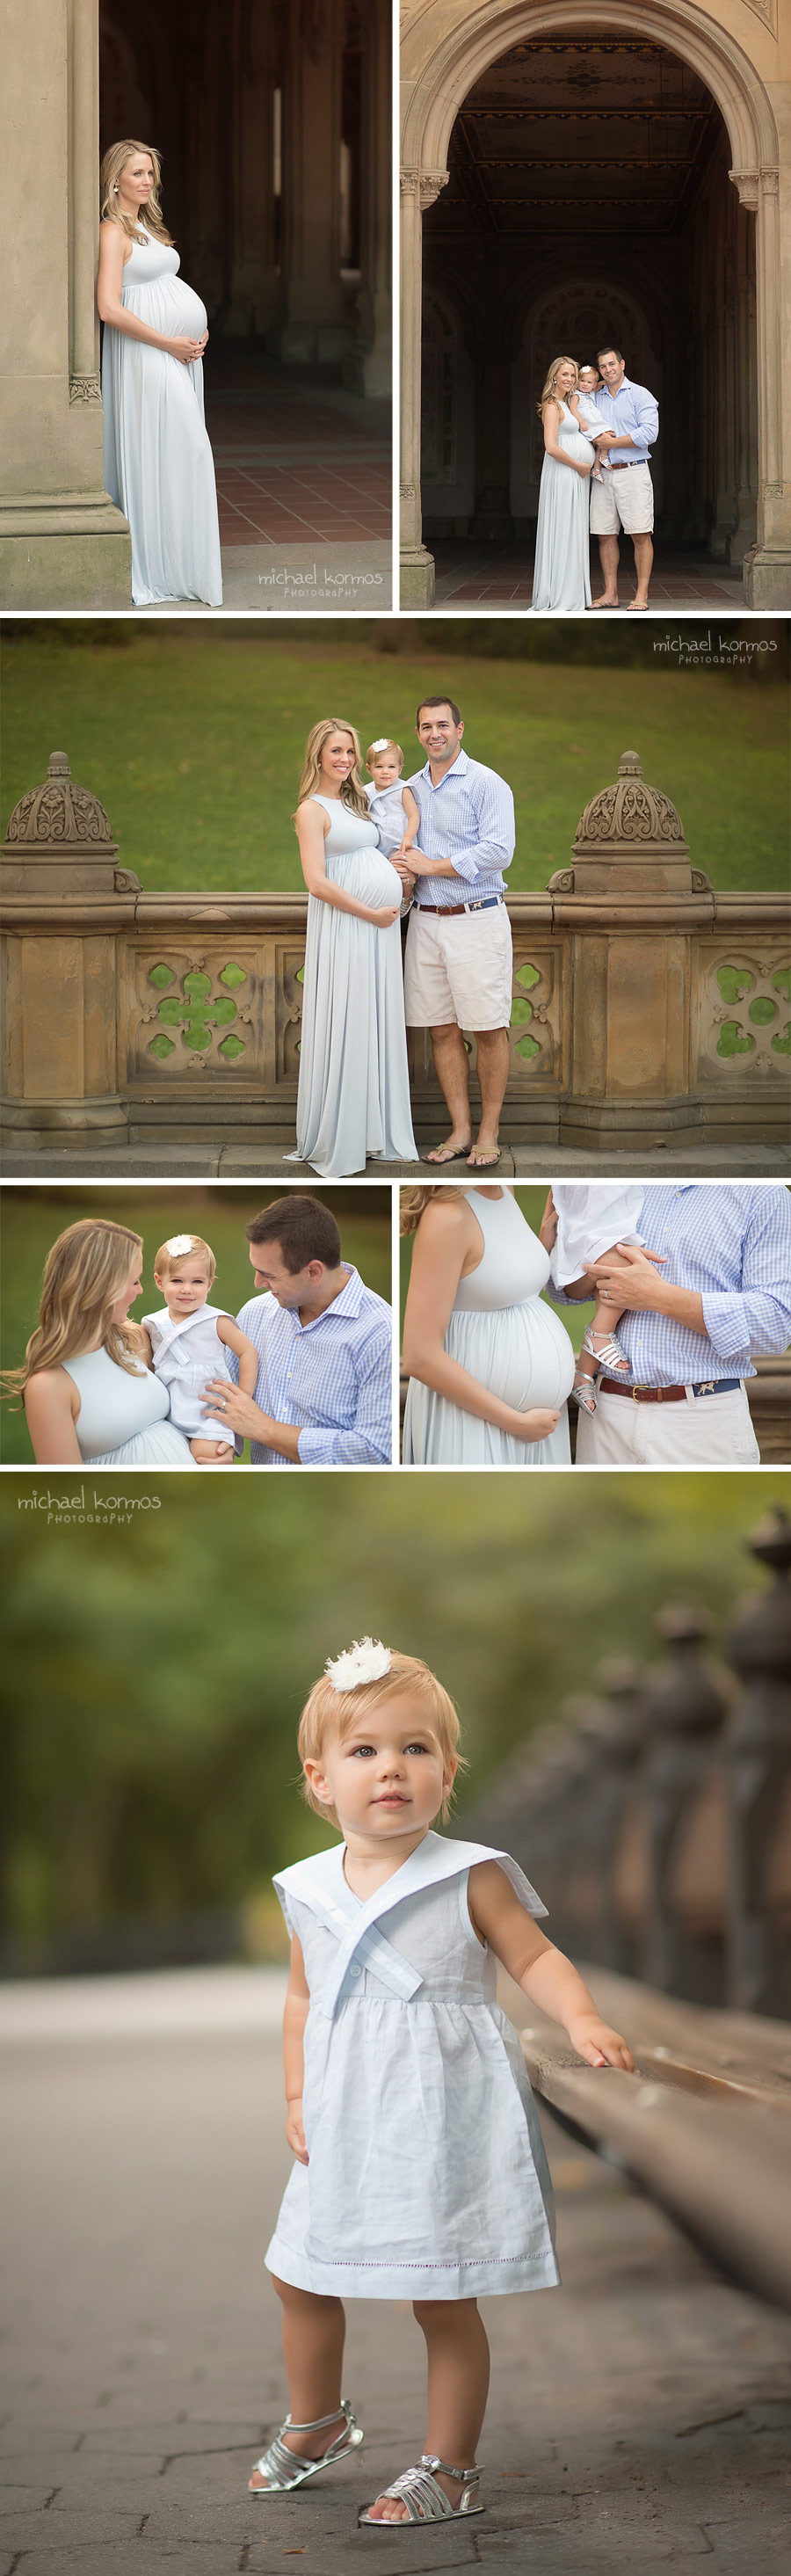 lifestyle maternity photography central park